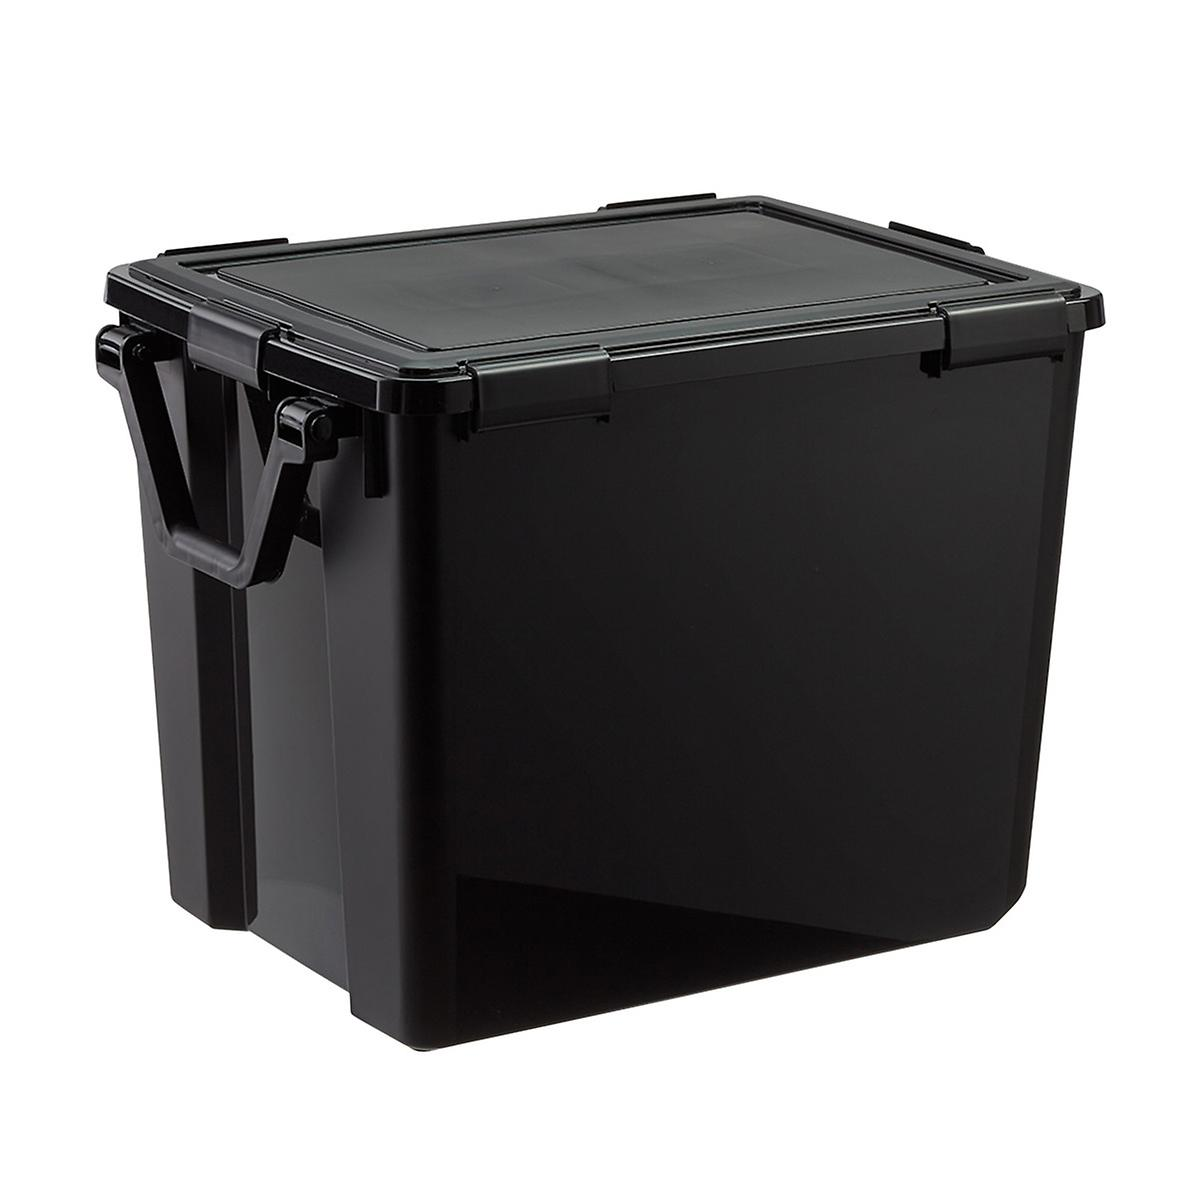 103 qt. Black Weathertight Tote with Wheels